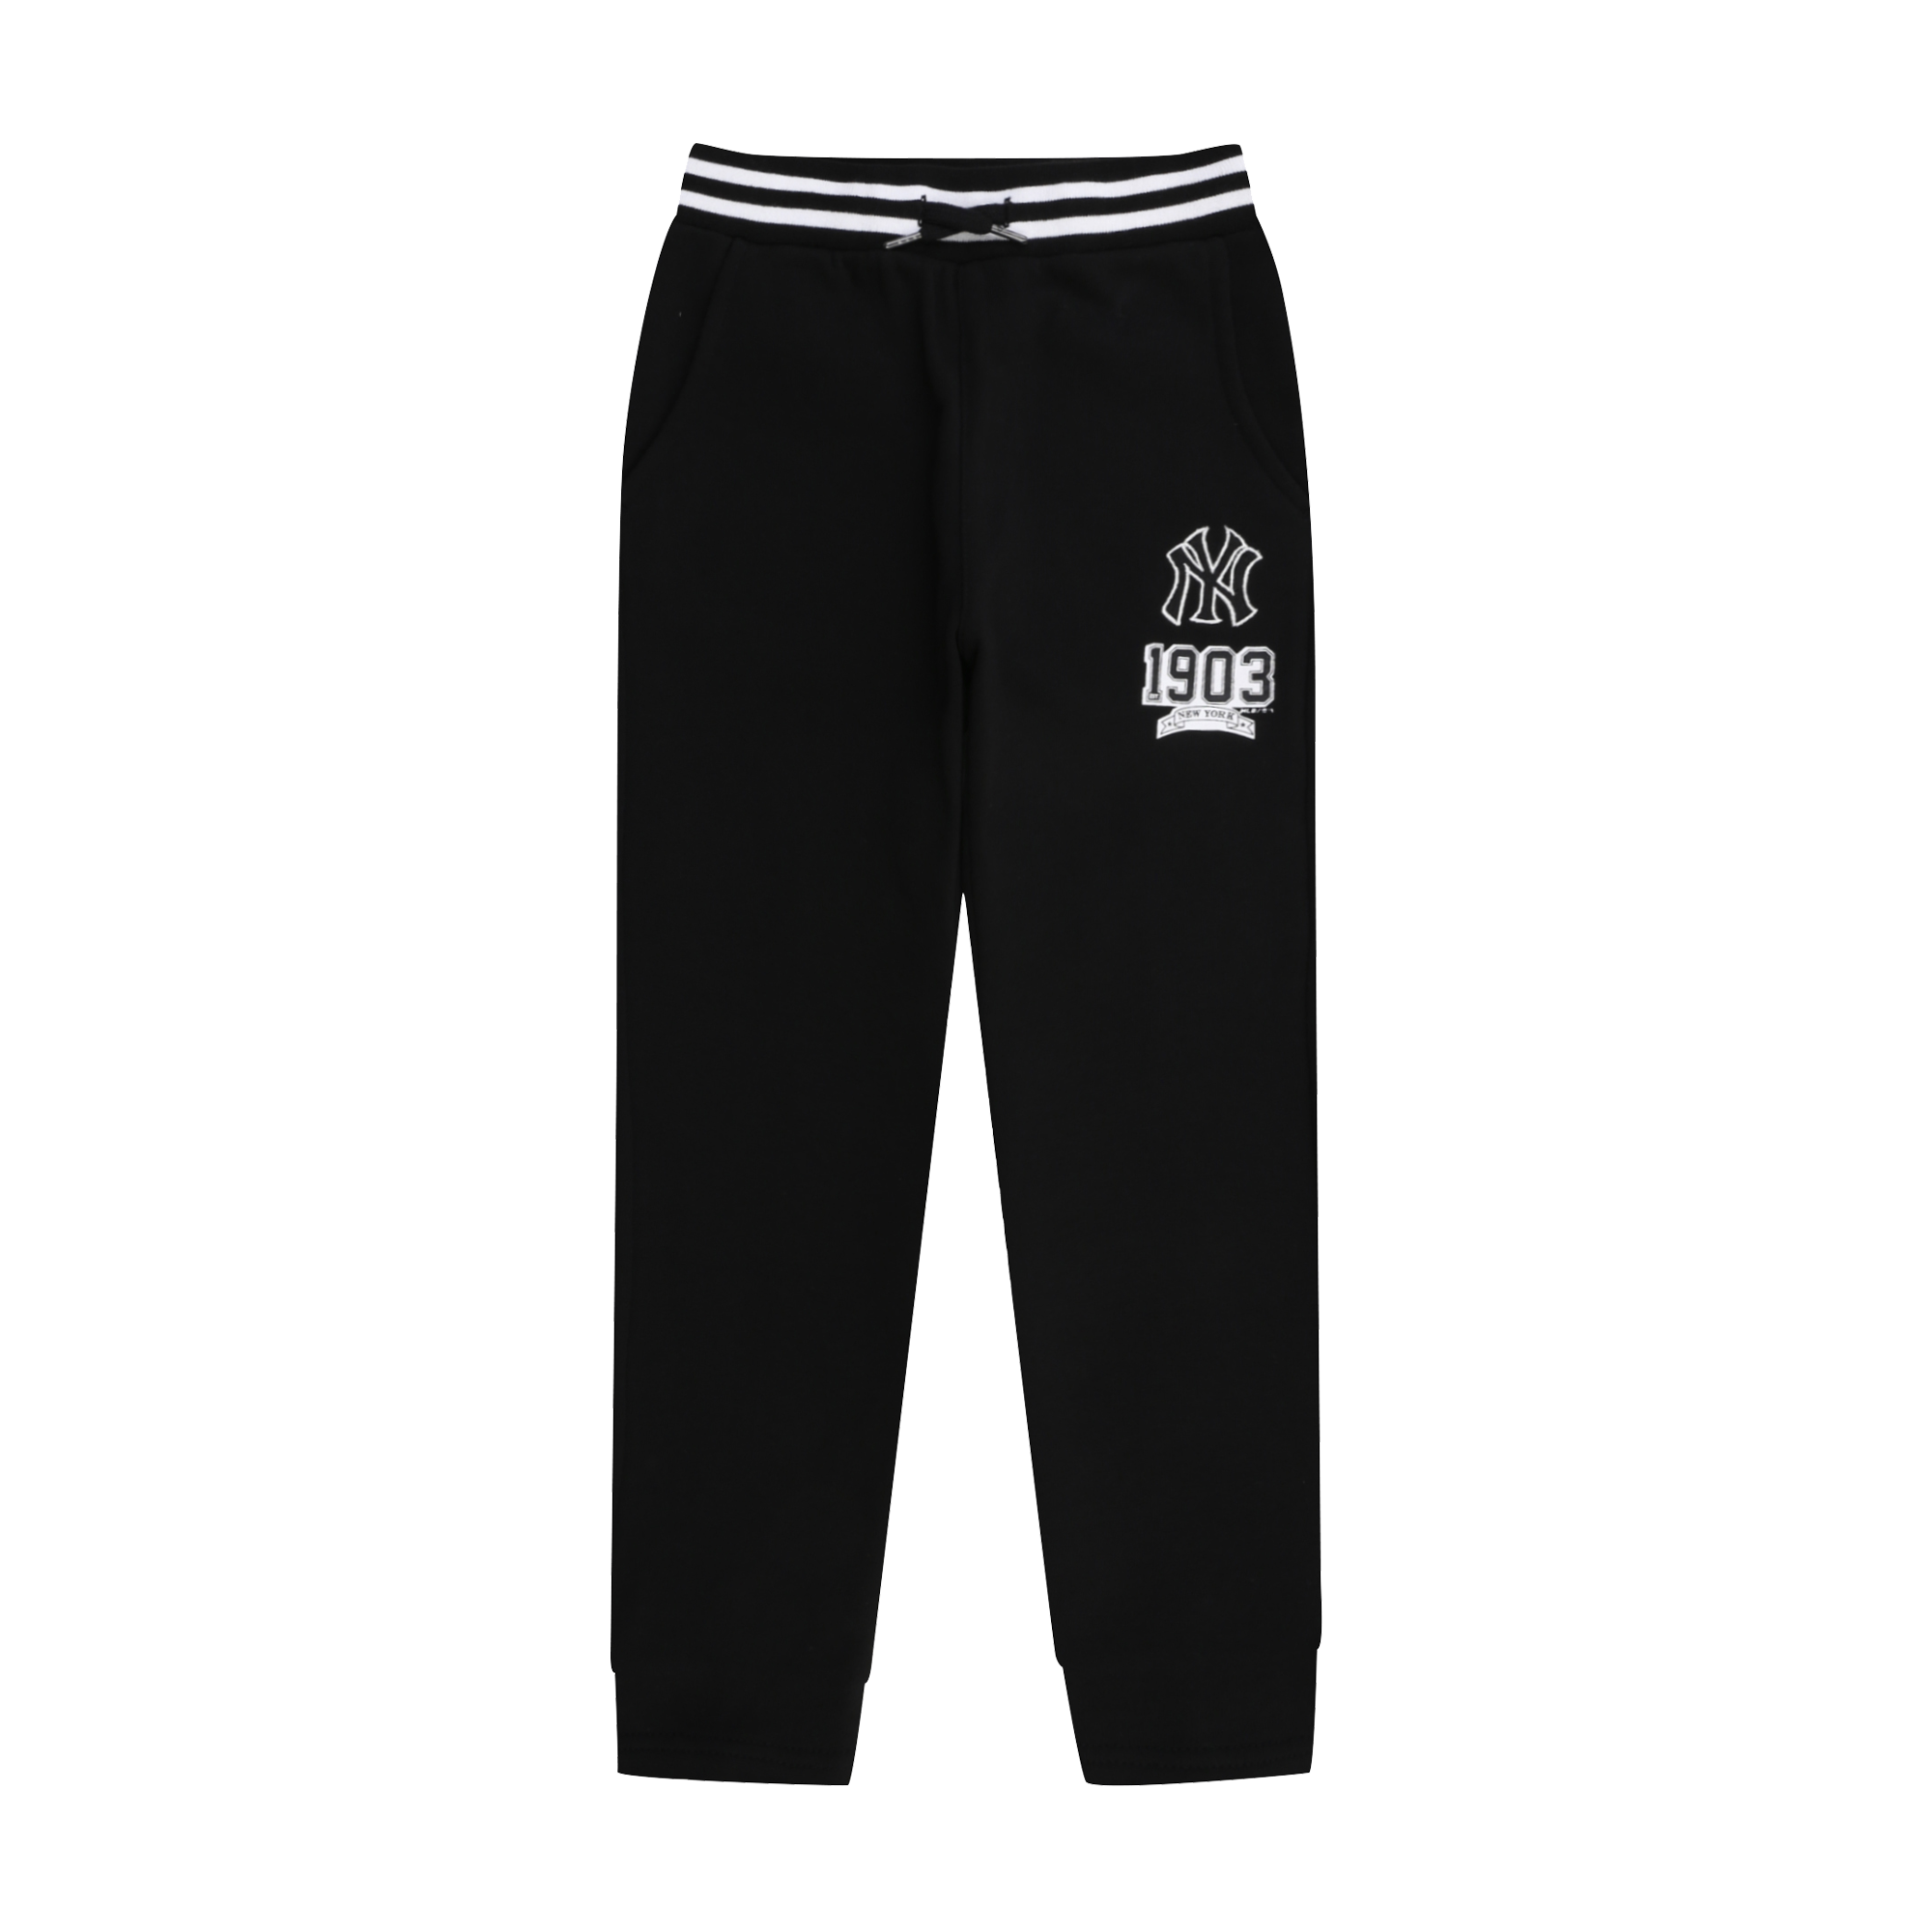 NEW YORK YANKEES UNISEX CLASSIC LOGO PANTS